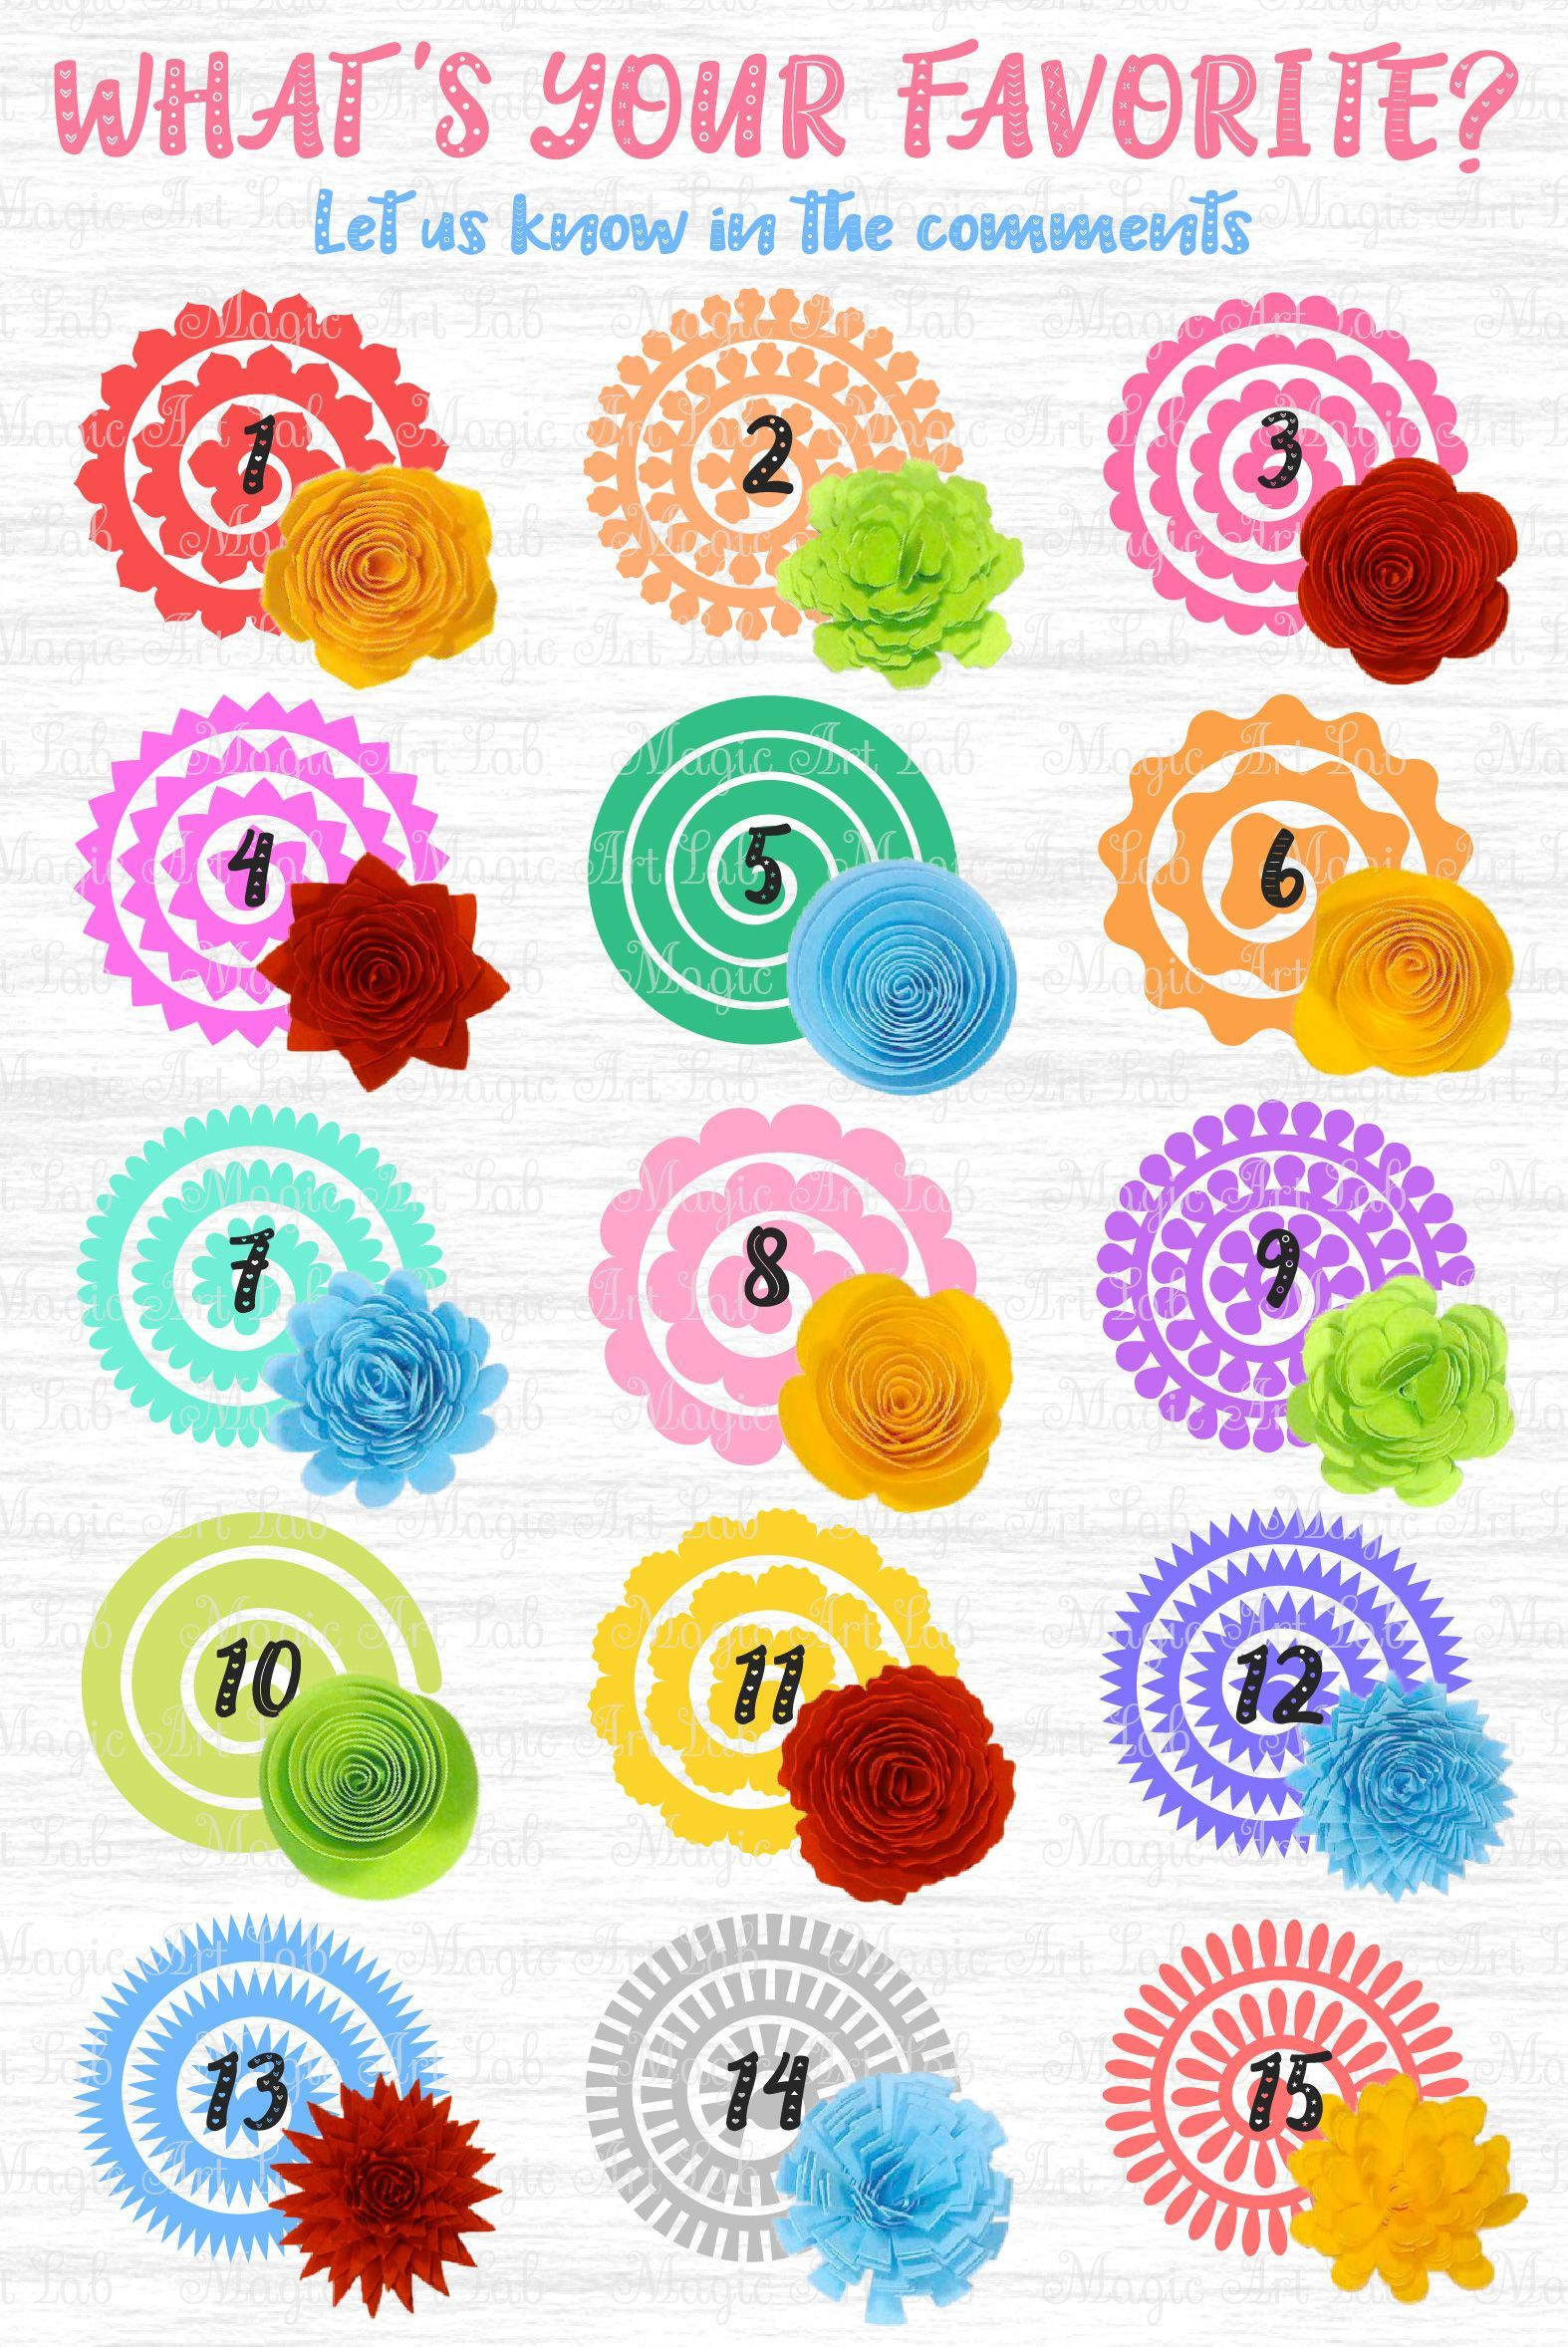 Rolled Flower svg, 3d flower svg, Rolled Paper Flower, Paper flowers svg, Rolled Flower Template, Flower cricut, Rolled flowers, Origami svg